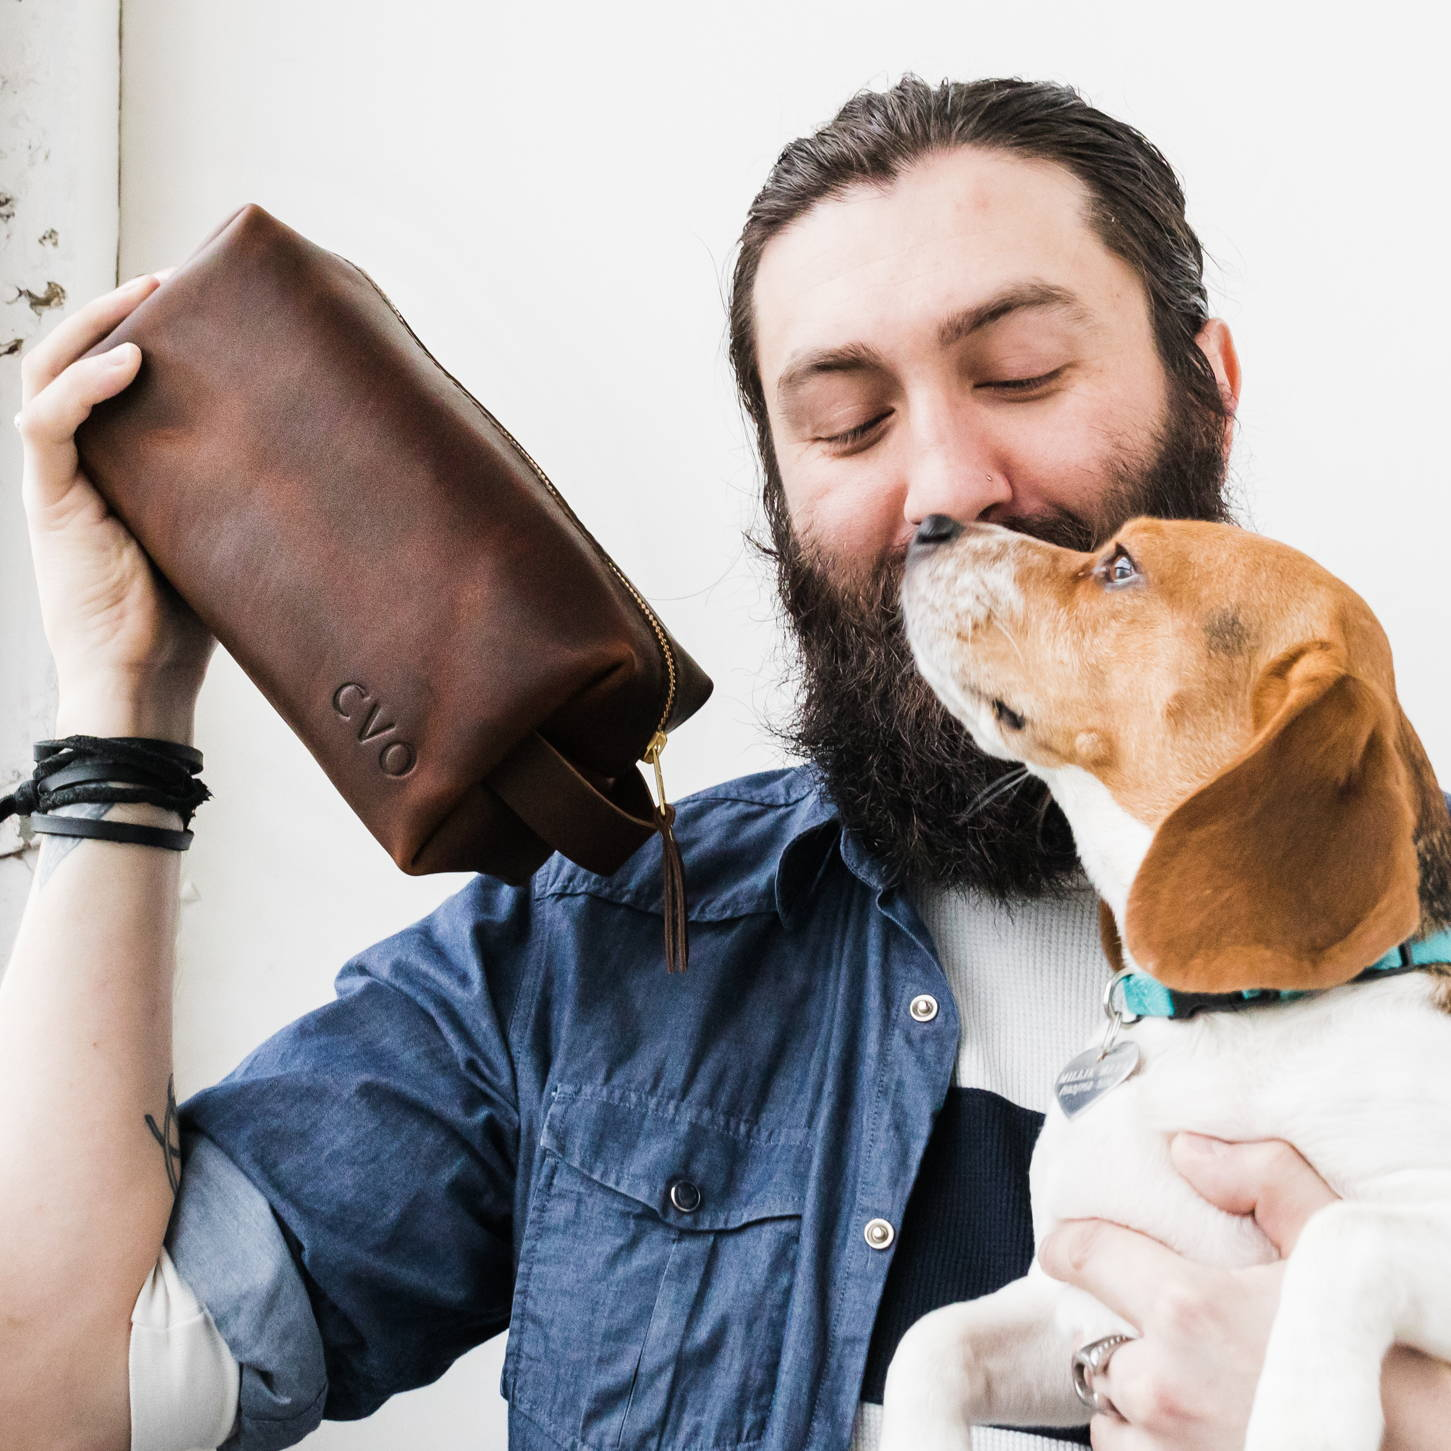 man holding cute dog and a grizzly leather dopp kit